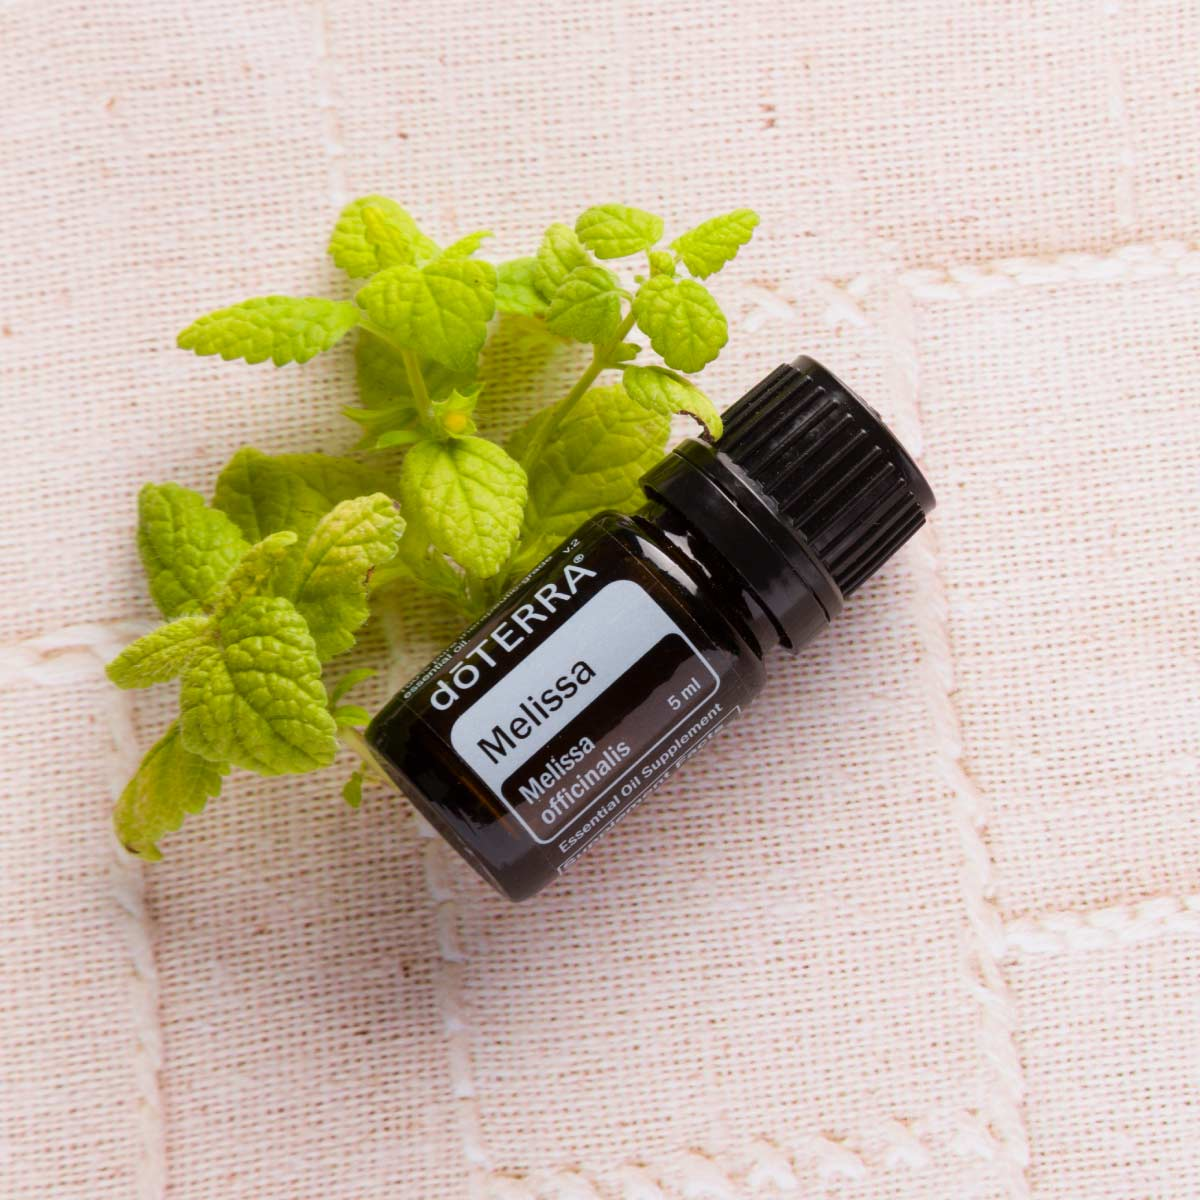 Bottle of Melissa essential oil next to fresh green leaves. Is Melissa essential oil good for skin. Melissa oil can be used in your skincare routine to help rejuvenate skin gently and naturally.